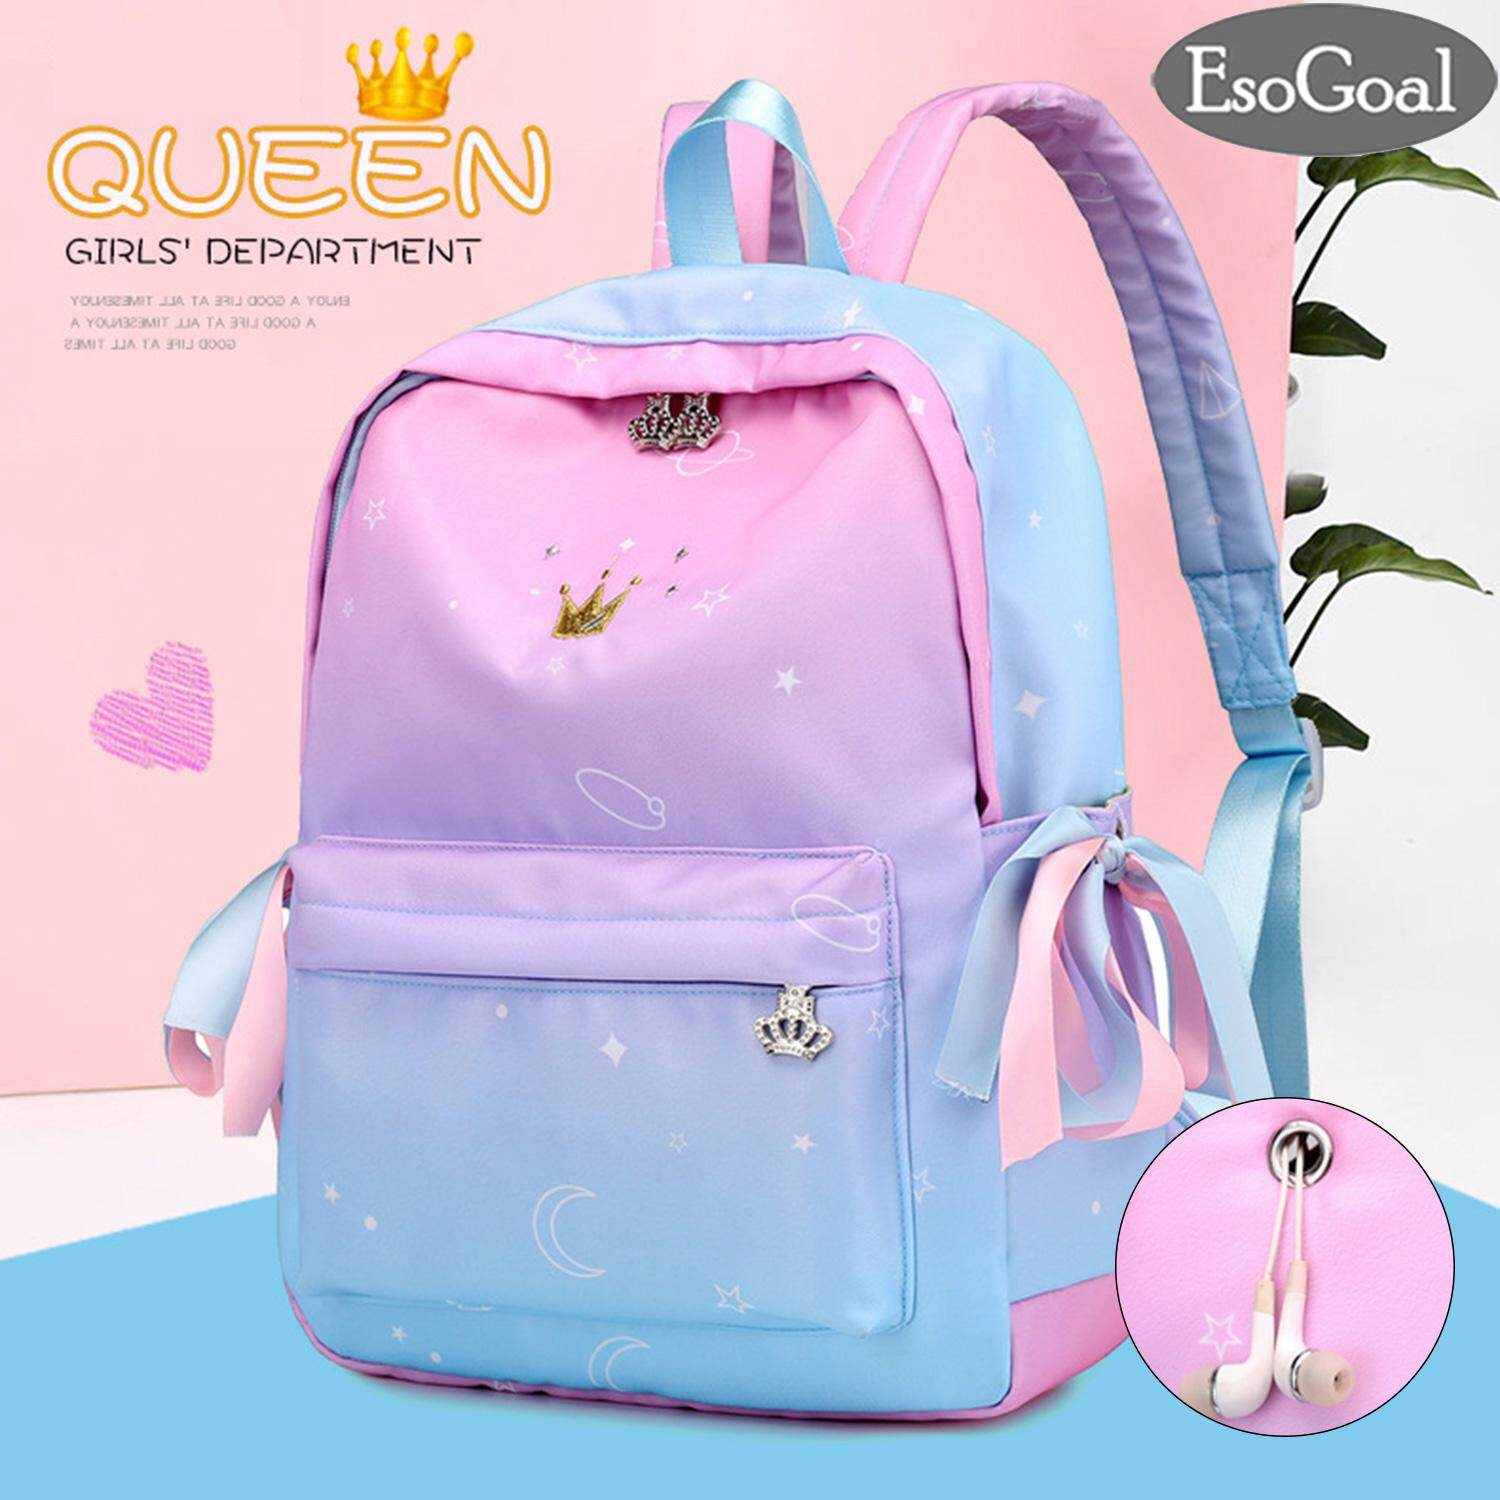 c8b62a35fe8c EsoGoal School Shoulder Bag Women Backpacks Orthopedic College School  Bookbag Laptop Computer Backpacks for Students Boys Girls Waterproof Nylon  ...